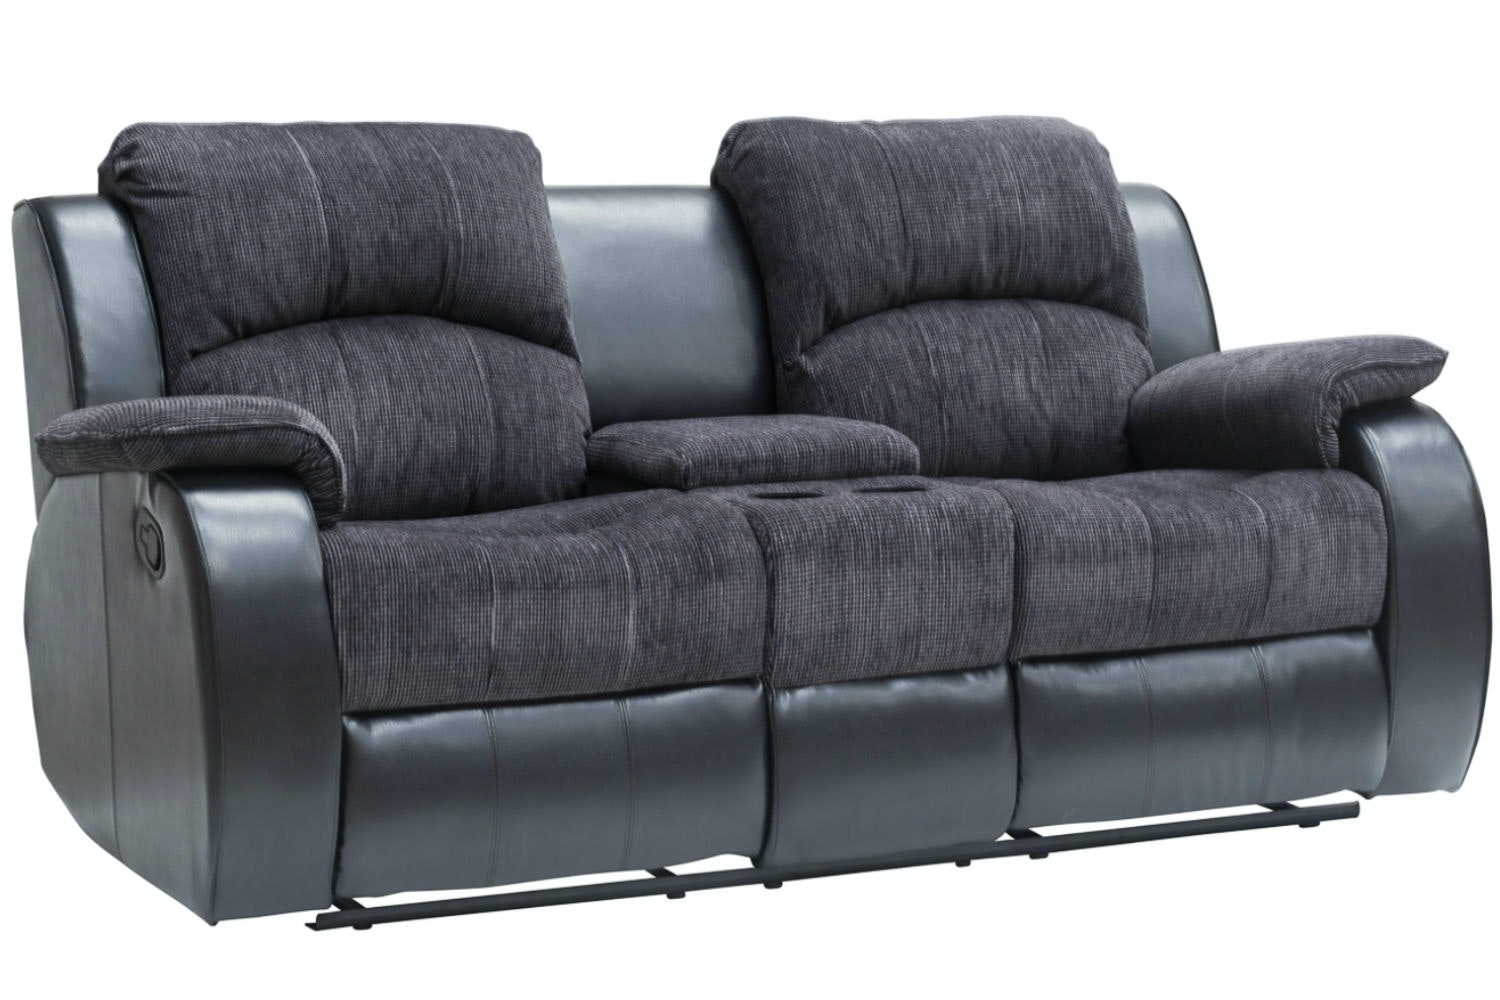 Kayde Console Recliner Sofa | Black